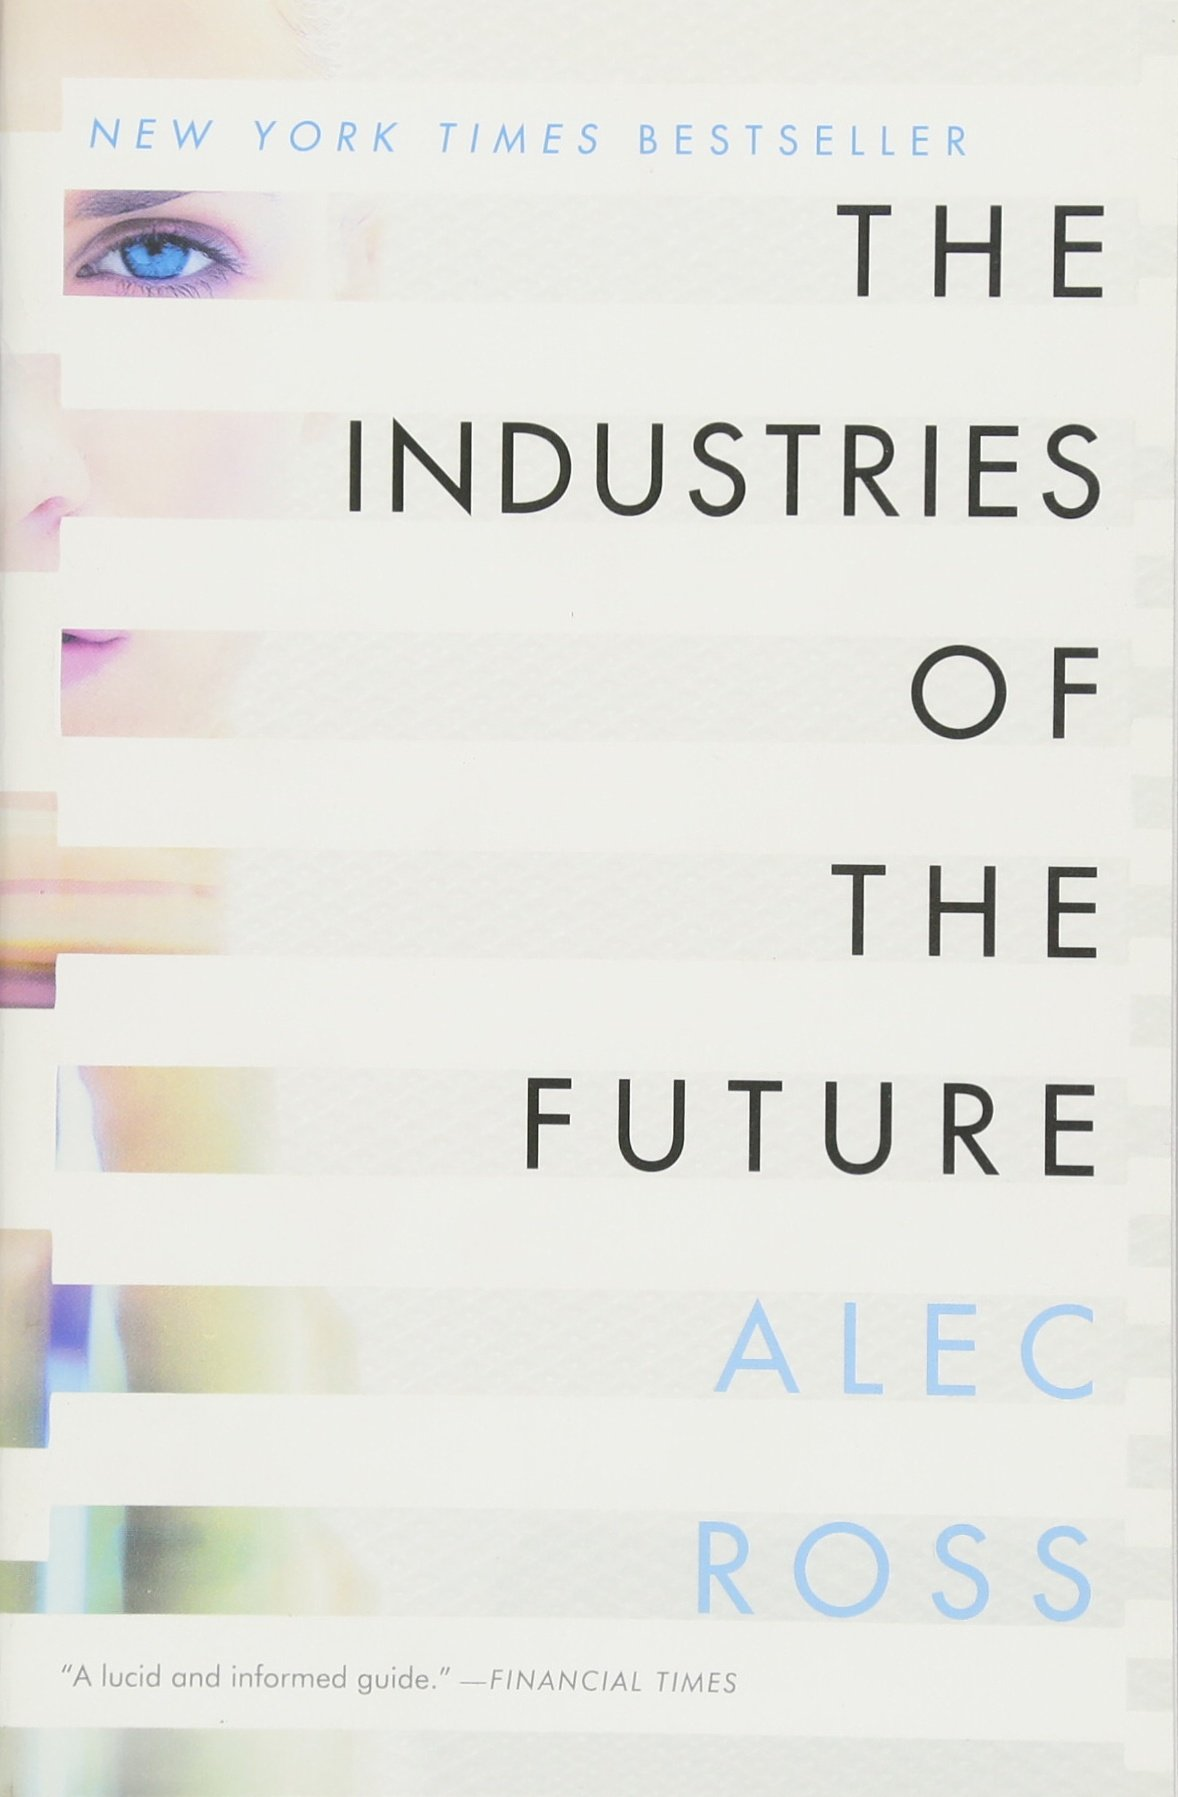 The Industries of the Future: Alec Ross: 9781476753669